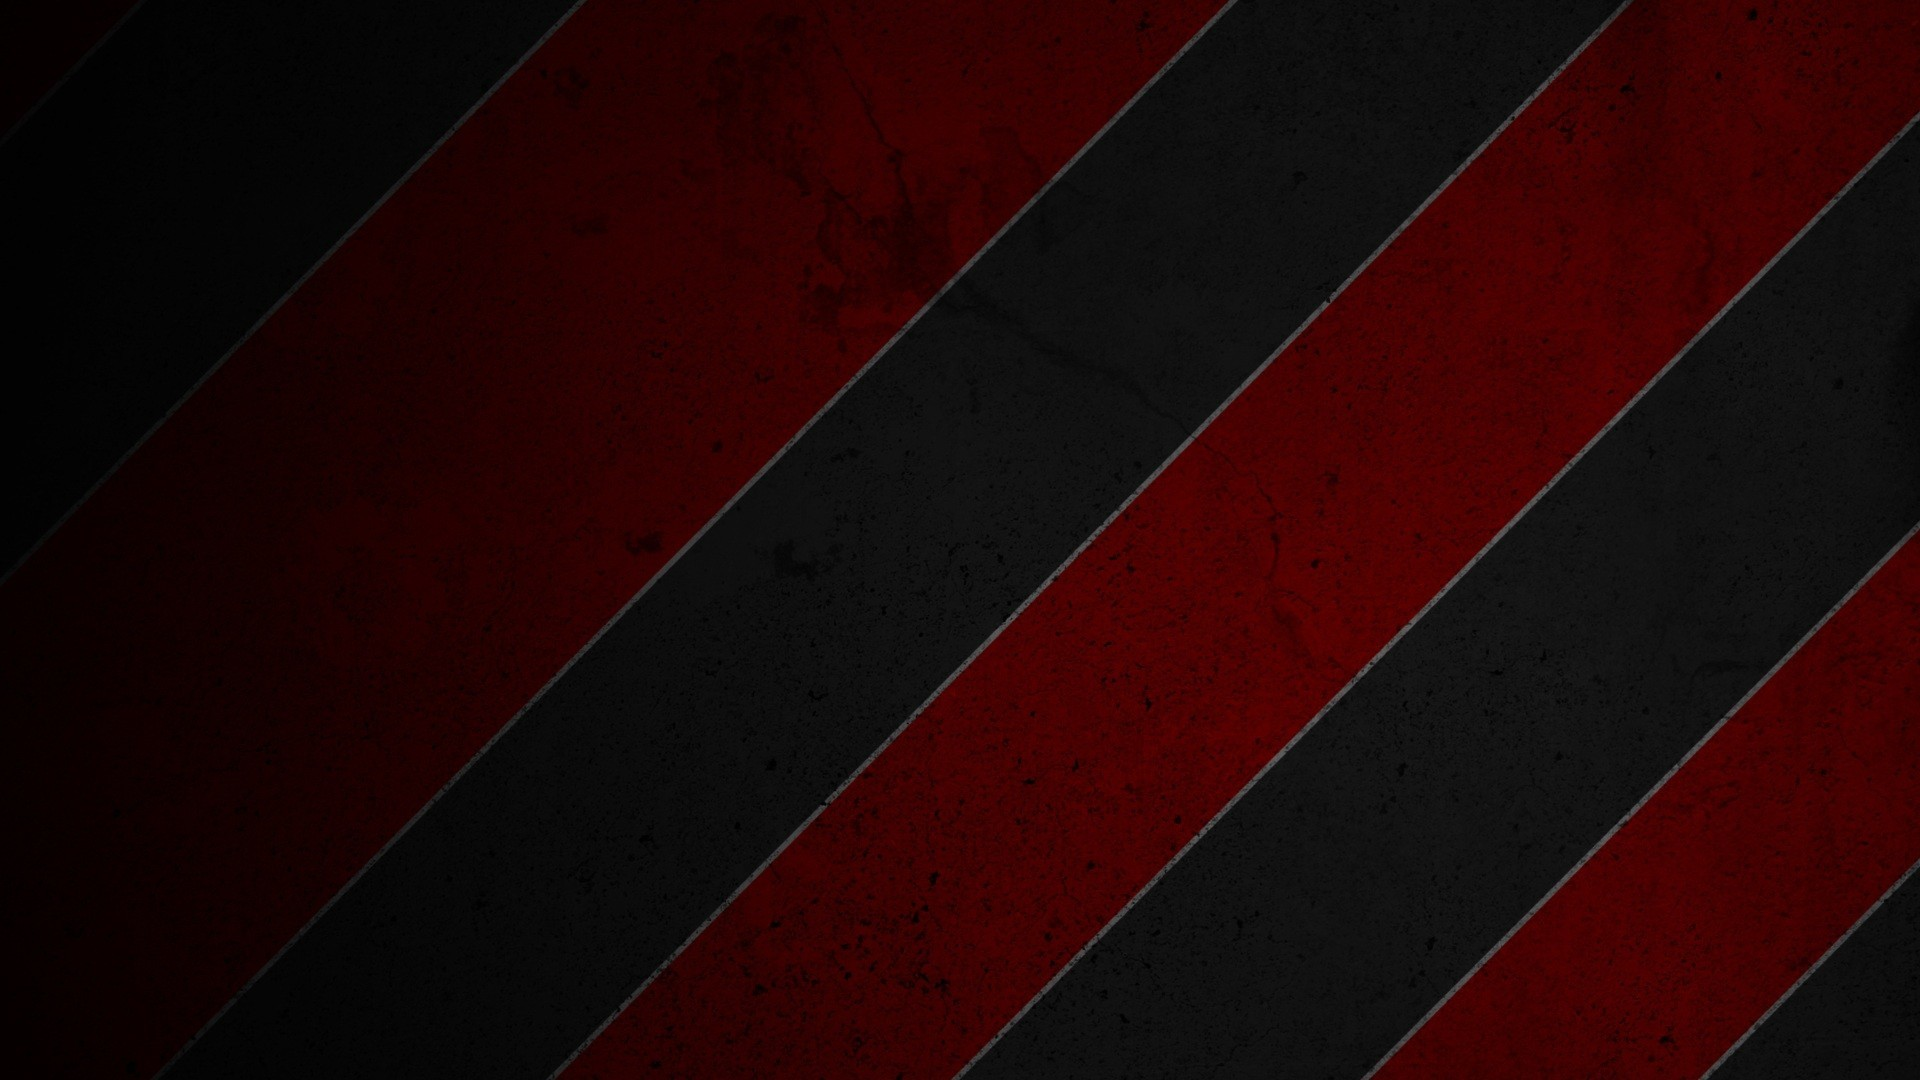 Cool Black and Red Wallpapers 59 images